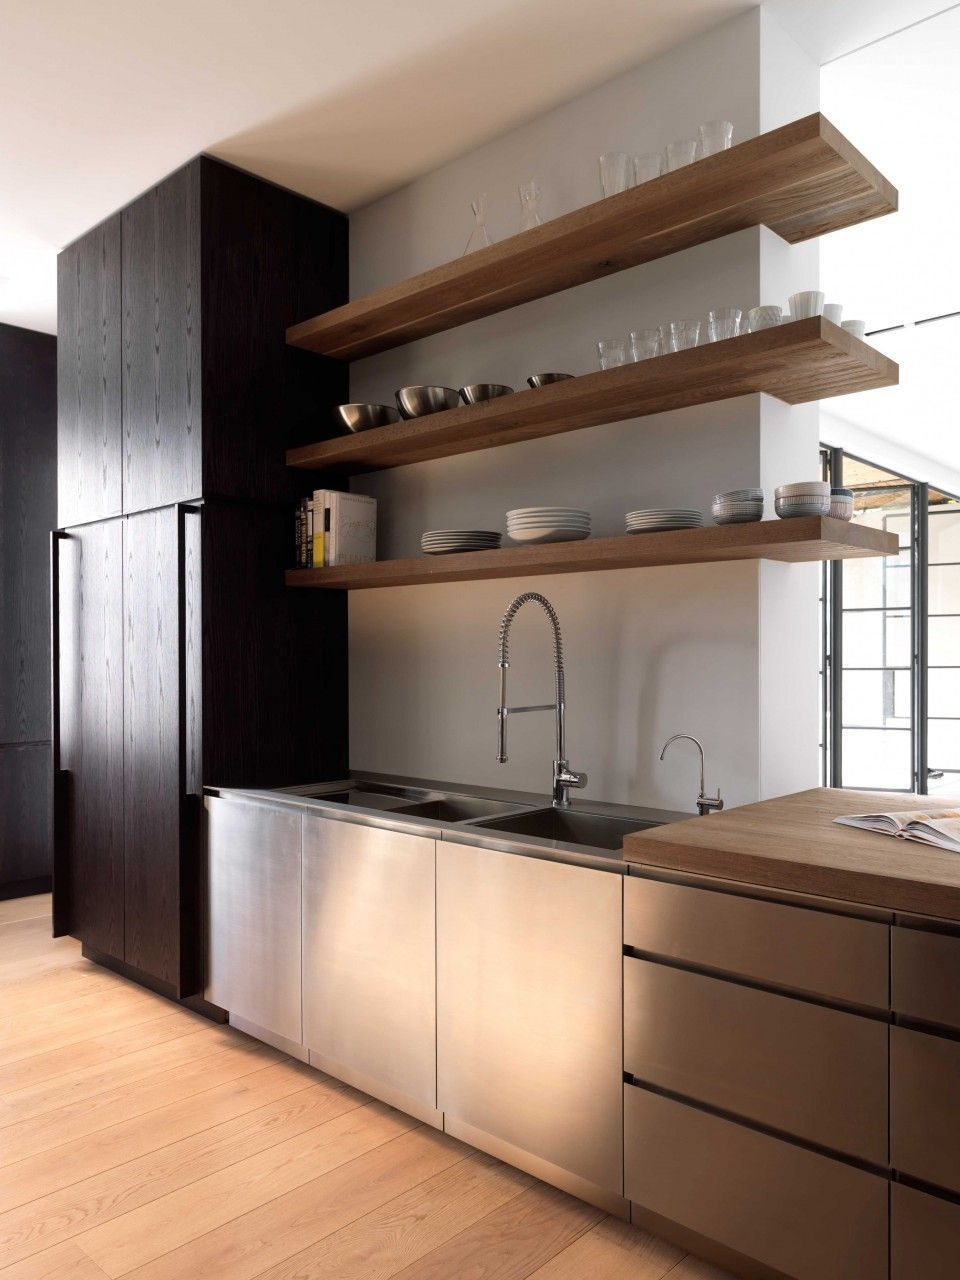 contemporary kitchen design benefits and types of contemporary kitchen contemporary k on kitchen decor open shelves id=87155